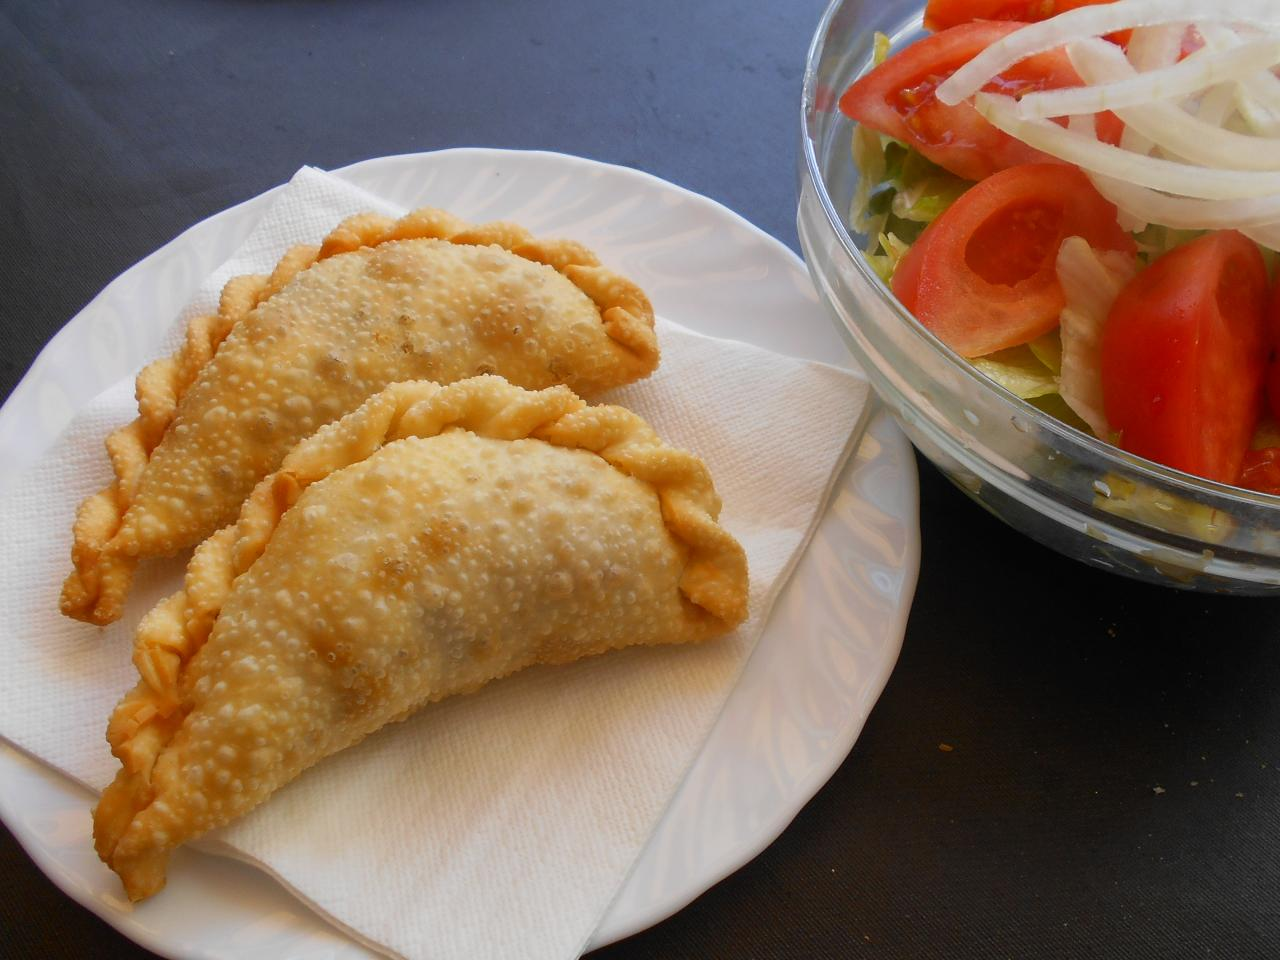 The empanadas and the 10-rated salad